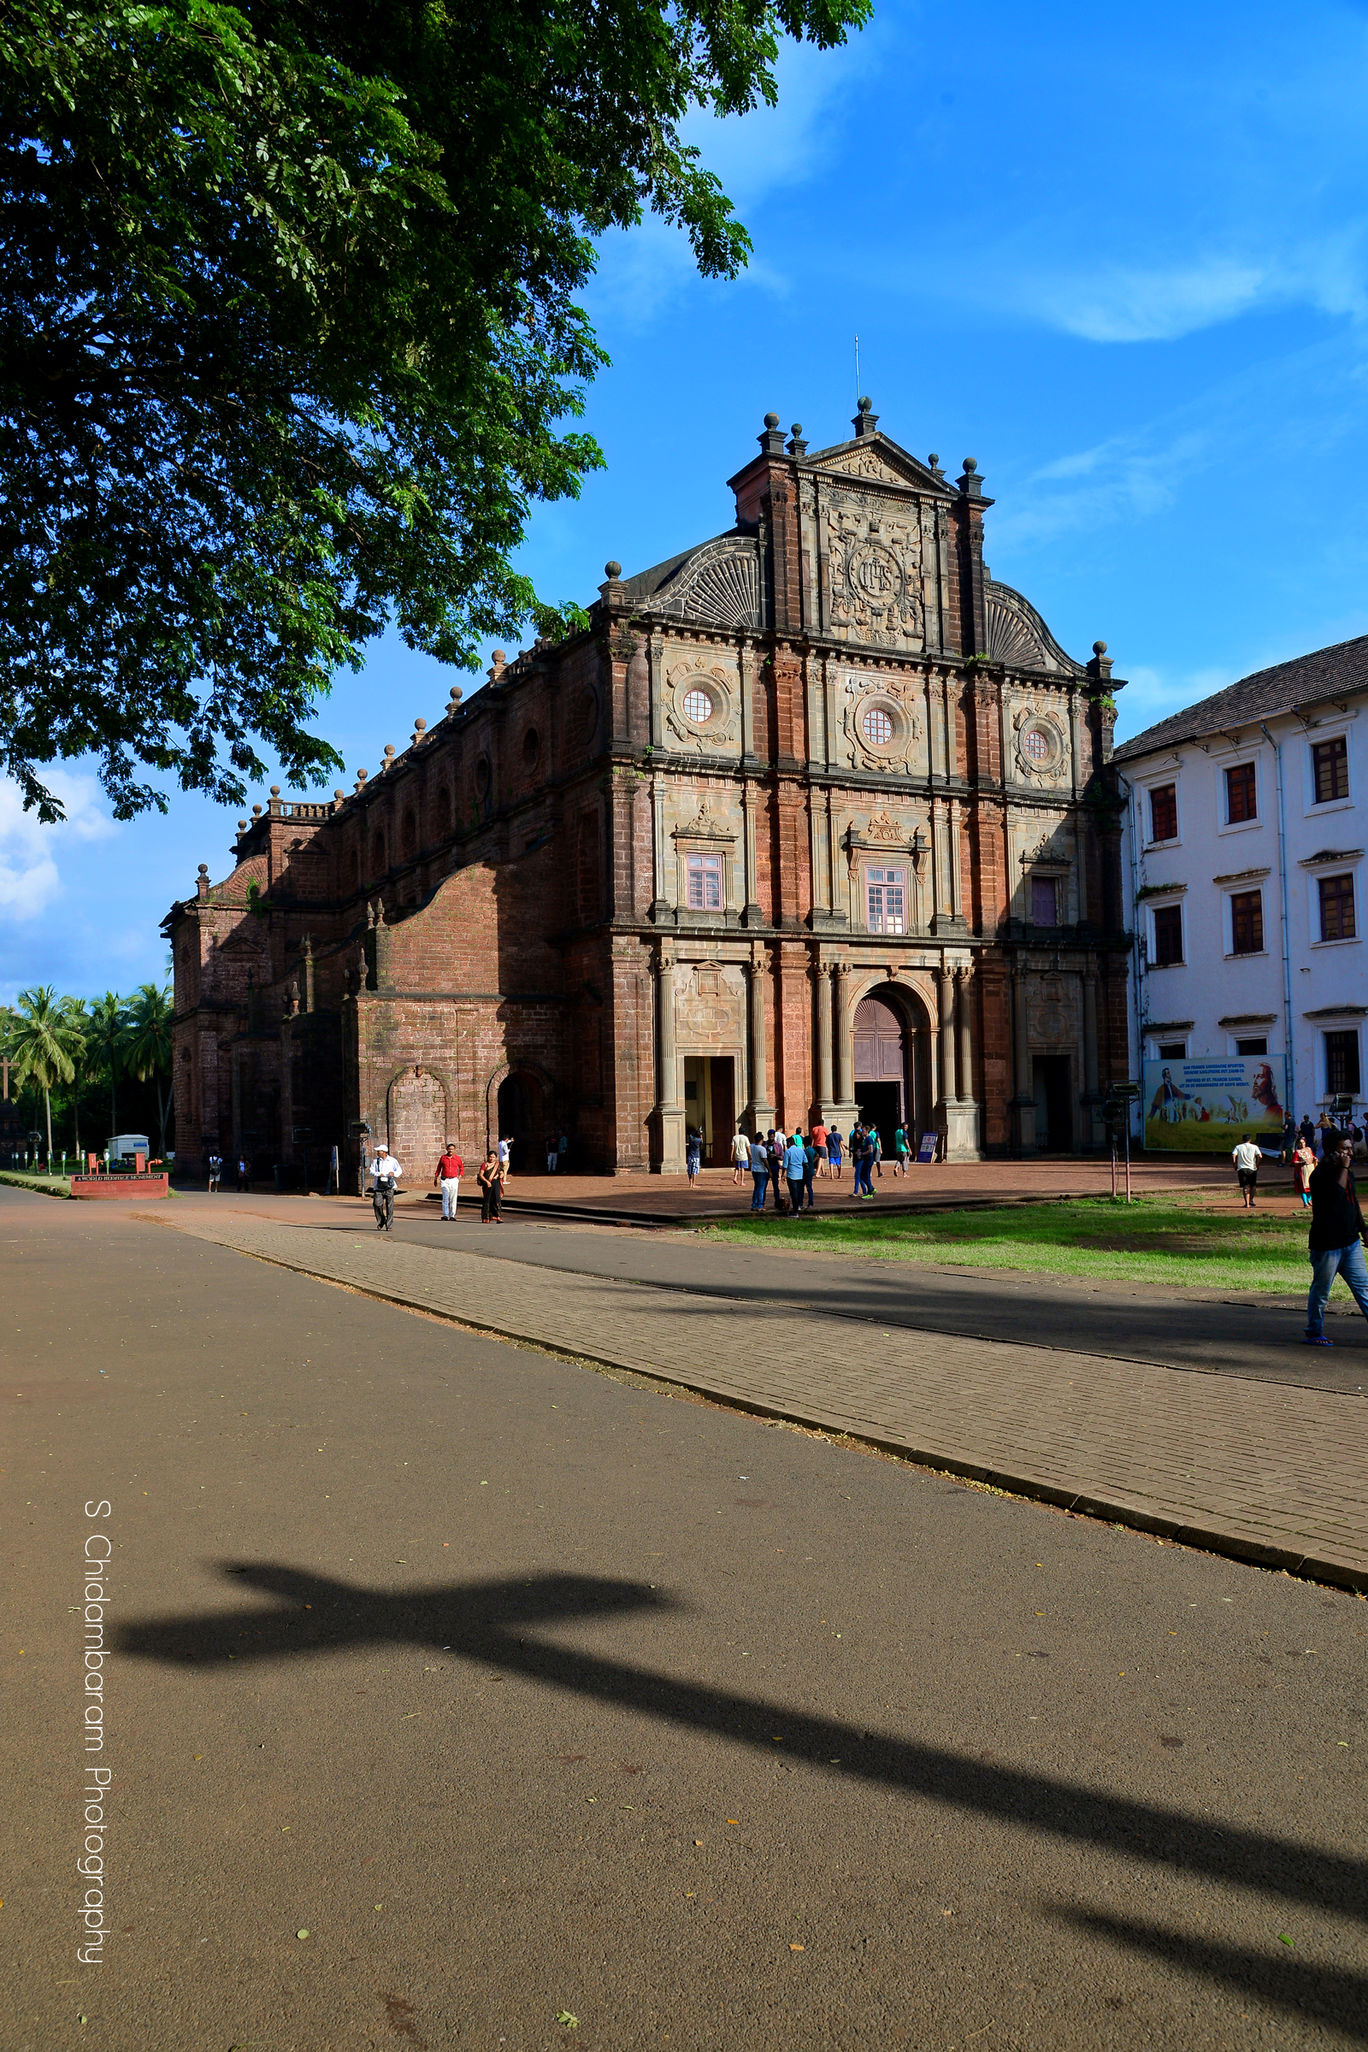 Photo of Basilica Of Bom Jesus By Chidambaram Sivathanu